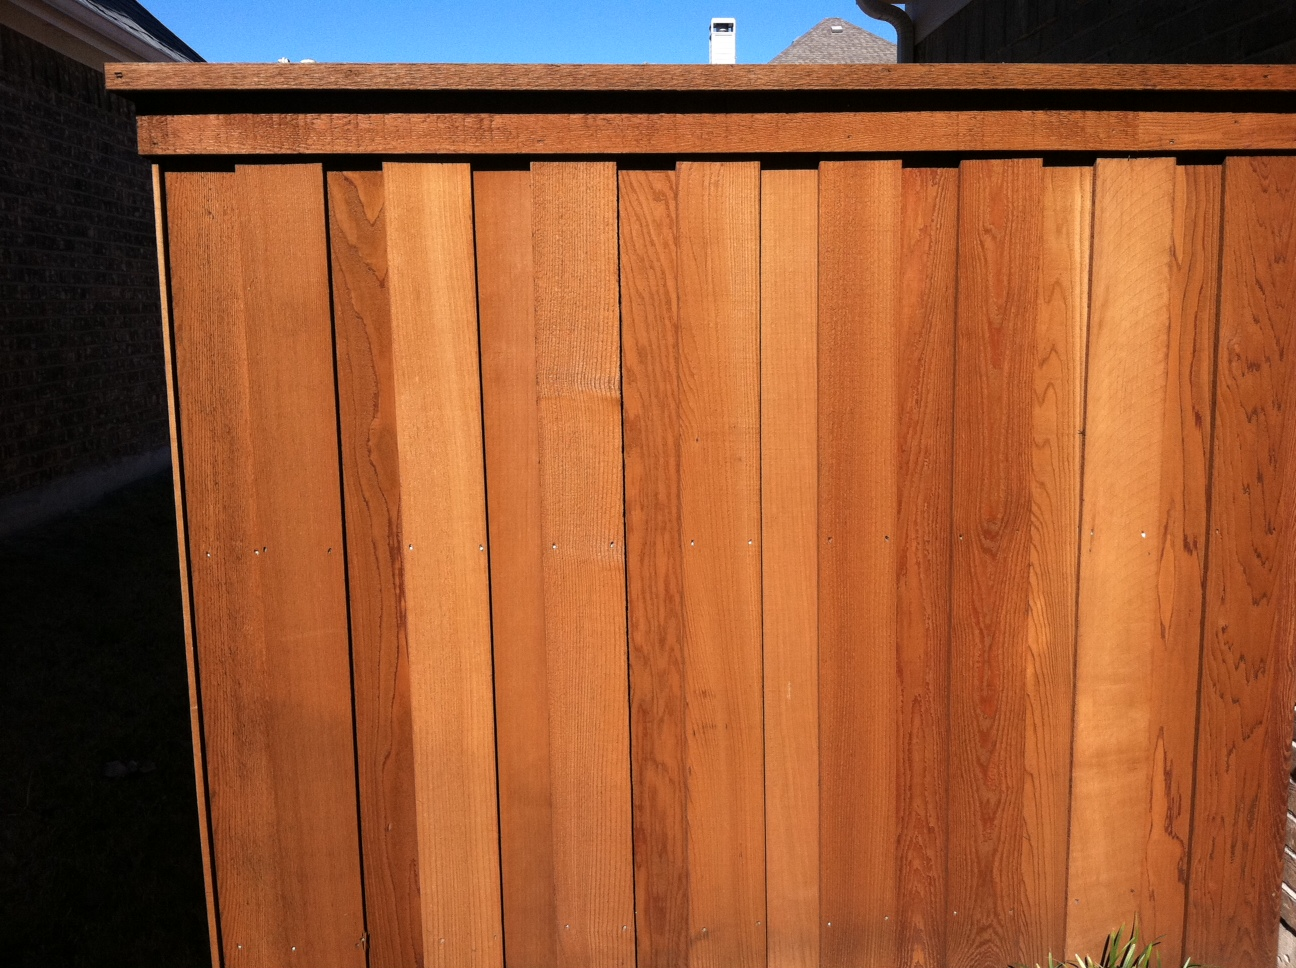 Incroyable Before We Install Cedar Wood Privacy Fence Denton Tx 8 Ft Board On Board